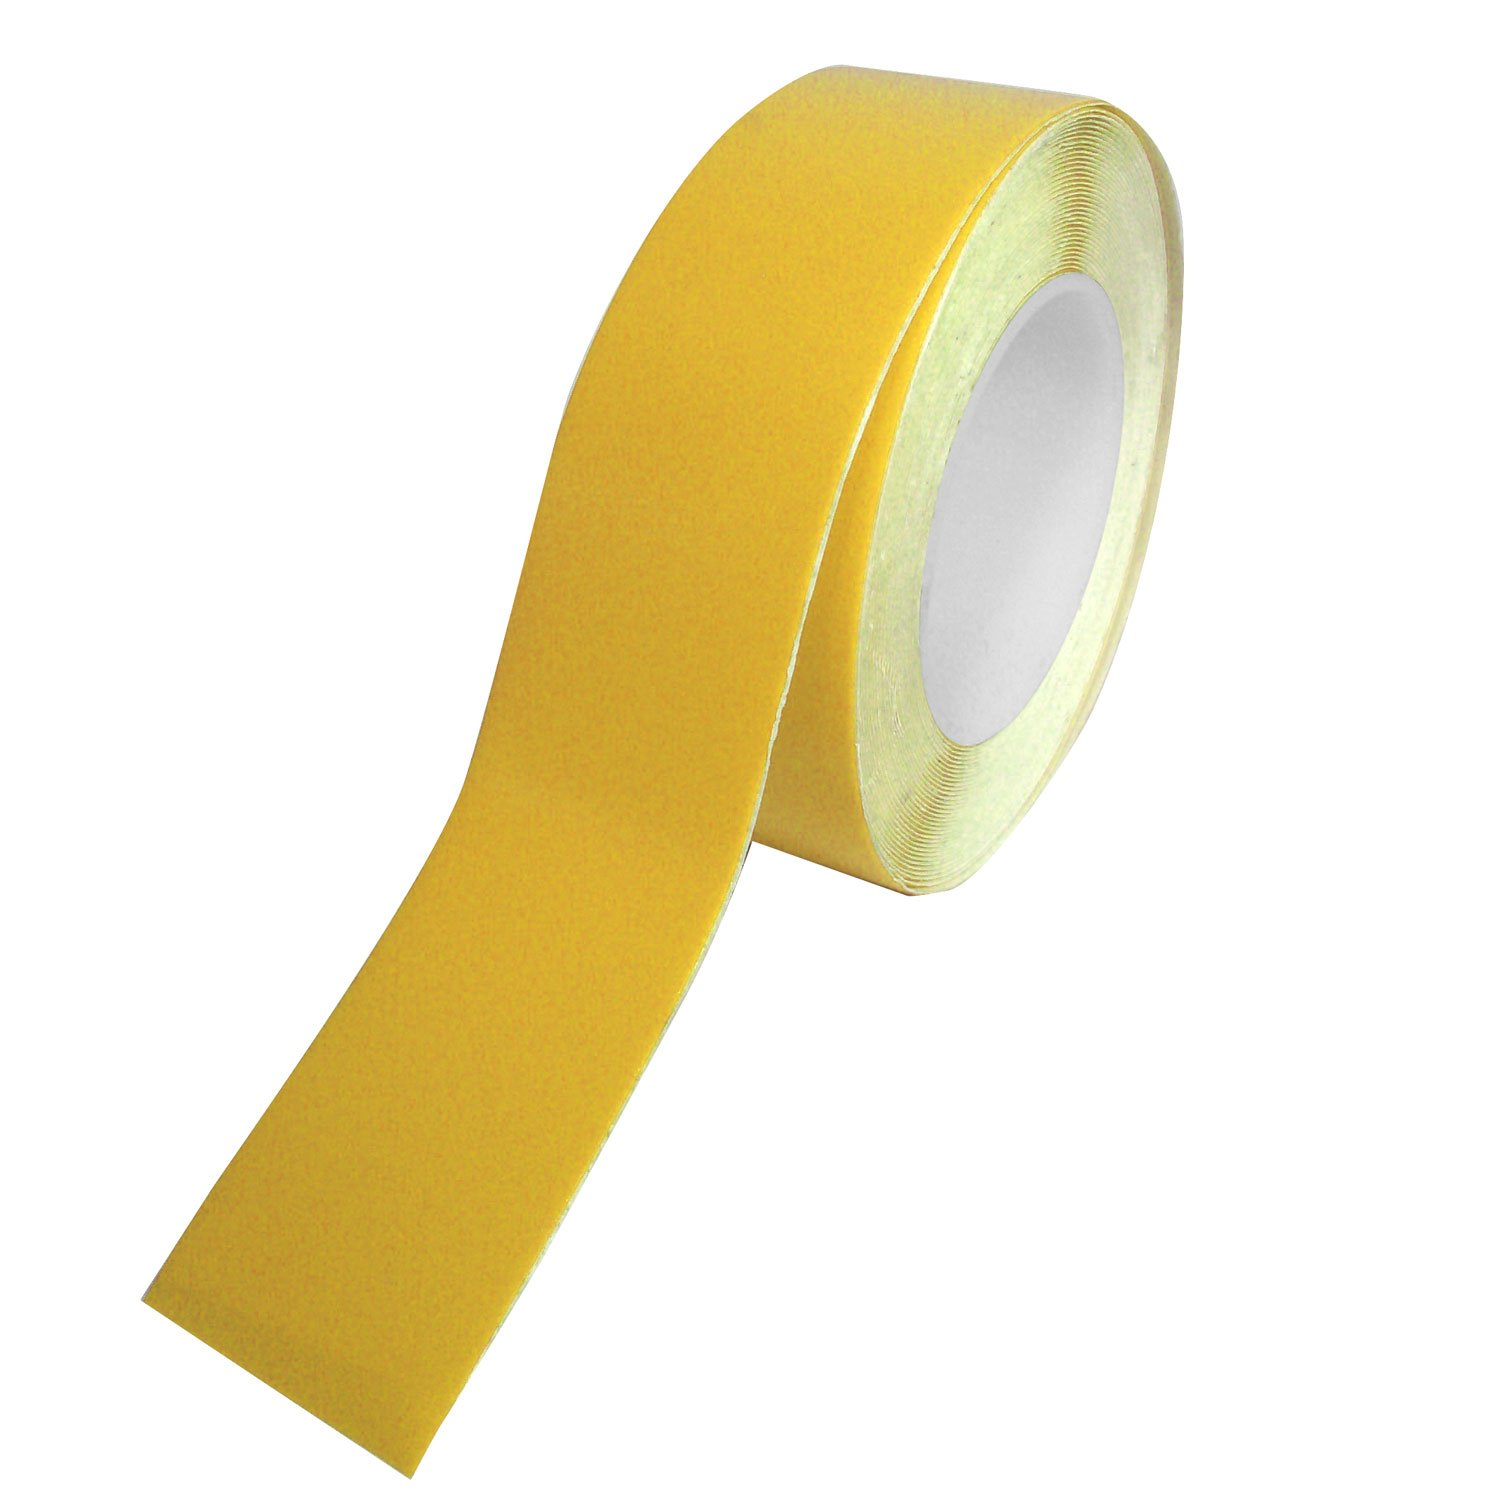 permaroute yellow heavy duty floor marking tape 4 inch x 98 foot roll. Black Bedroom Furniture Sets. Home Design Ideas